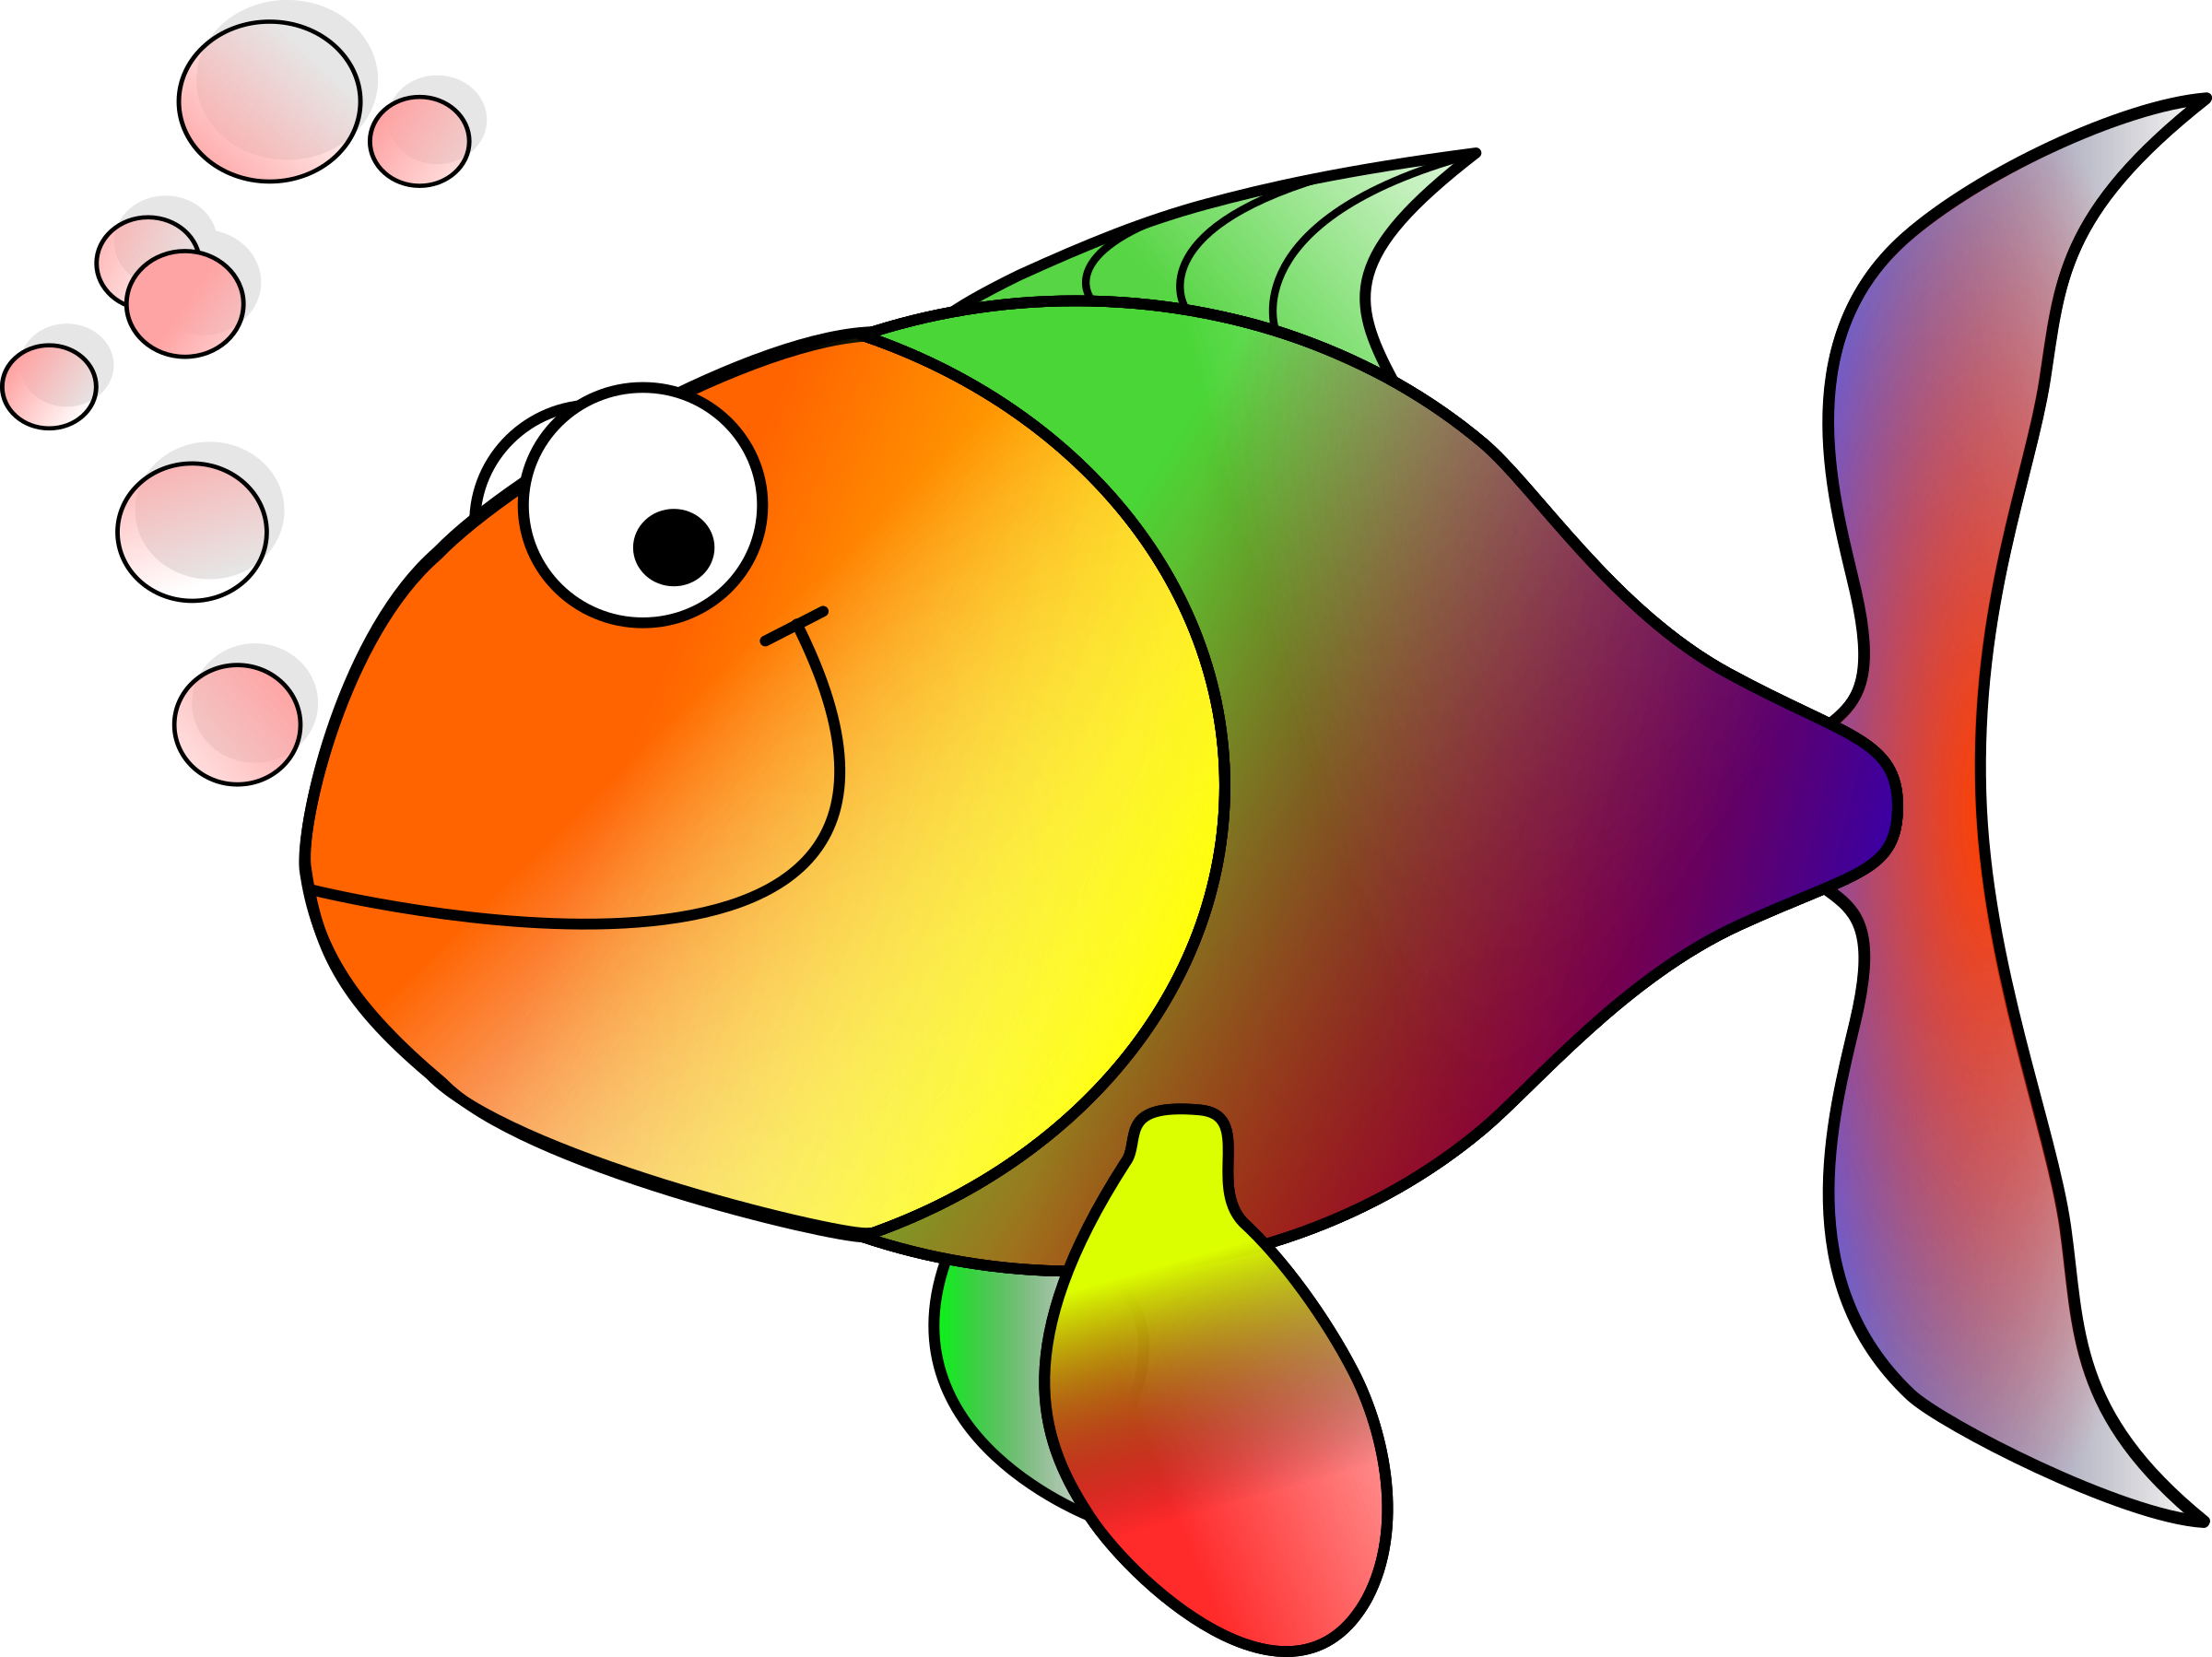 Free clipart fresh water fish in seaweed borders clipart stock The Fish Shire by @mgriffiths26, A fish blowing bubbles., on ... clipart stock